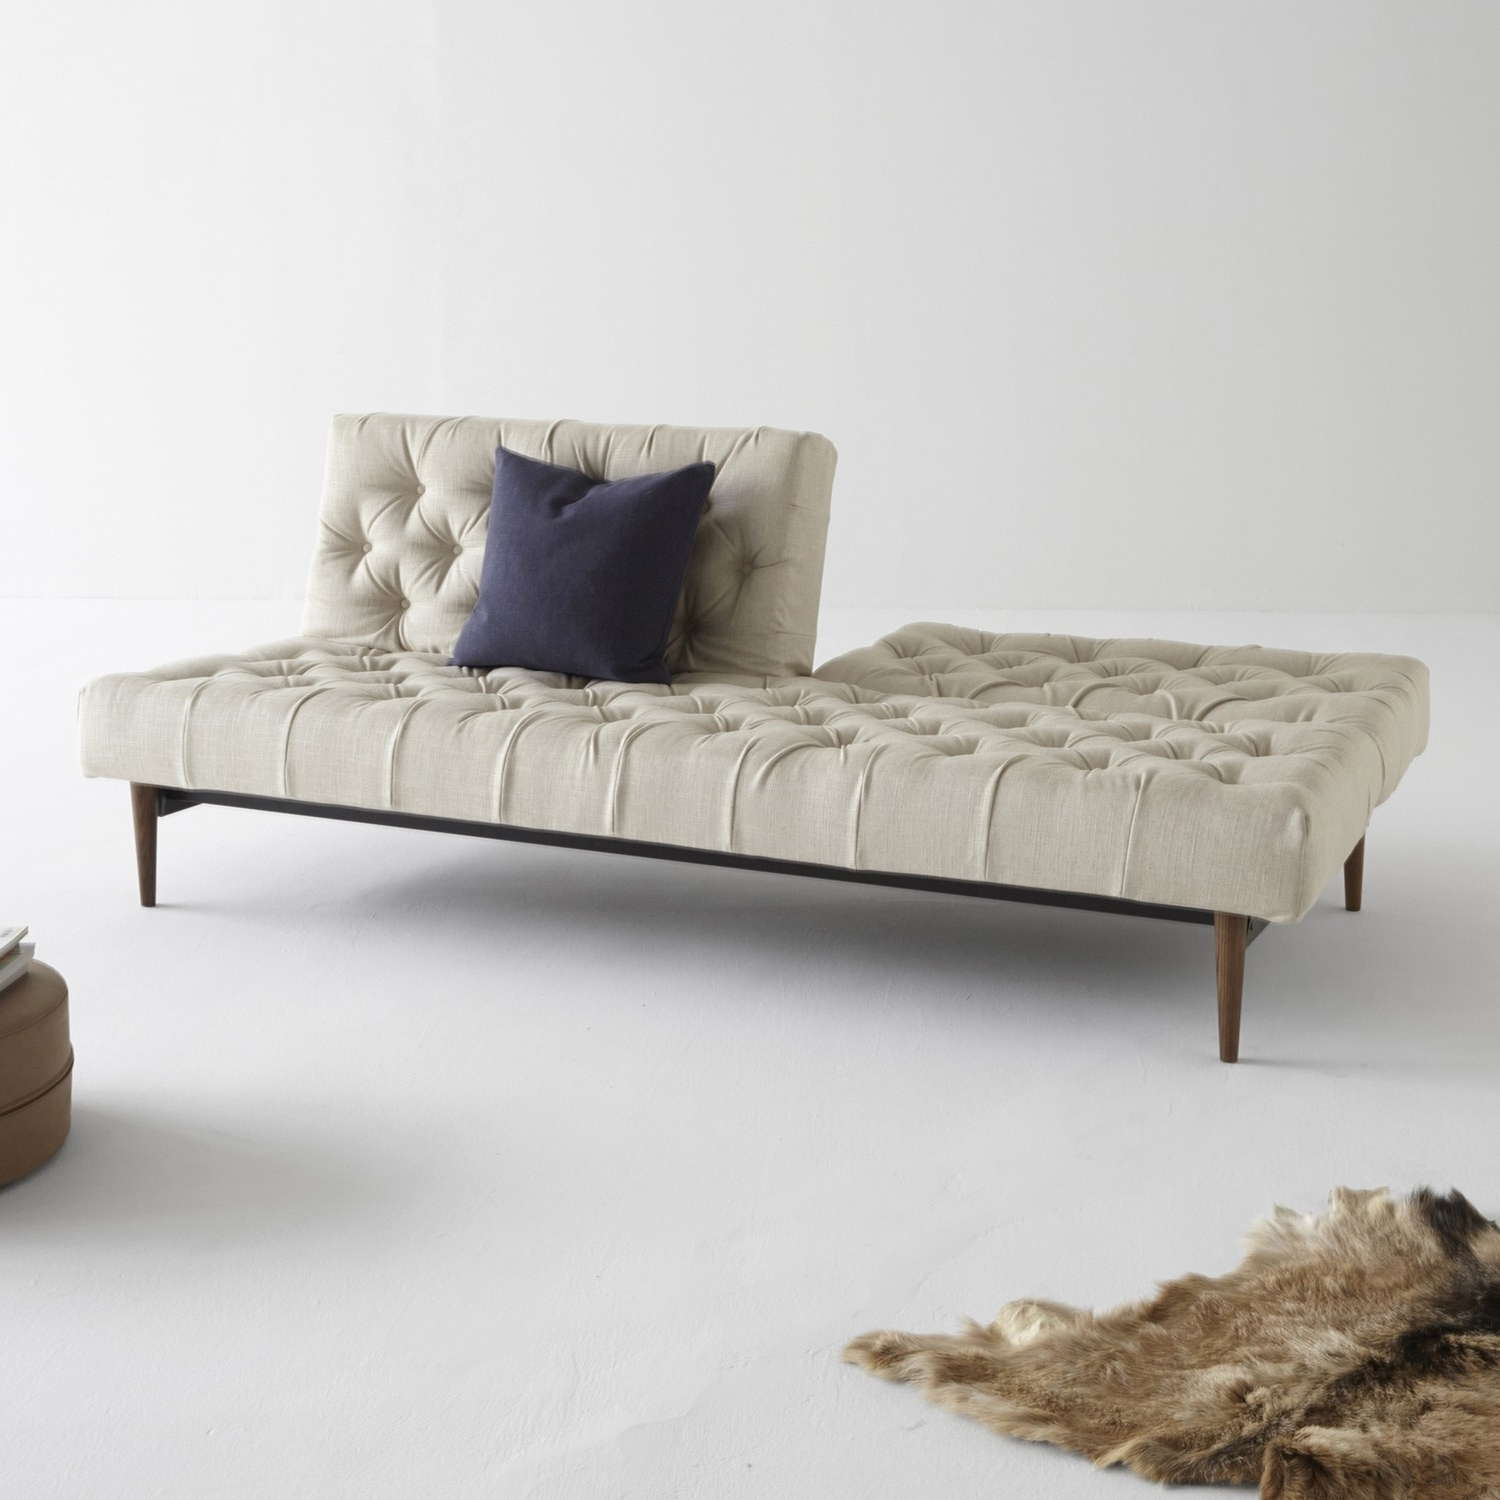 Elegant Chesterfield Sleeper Sofa 42 With Additional Sofa Room Ideas with Chesterfield Sleeper Sofa